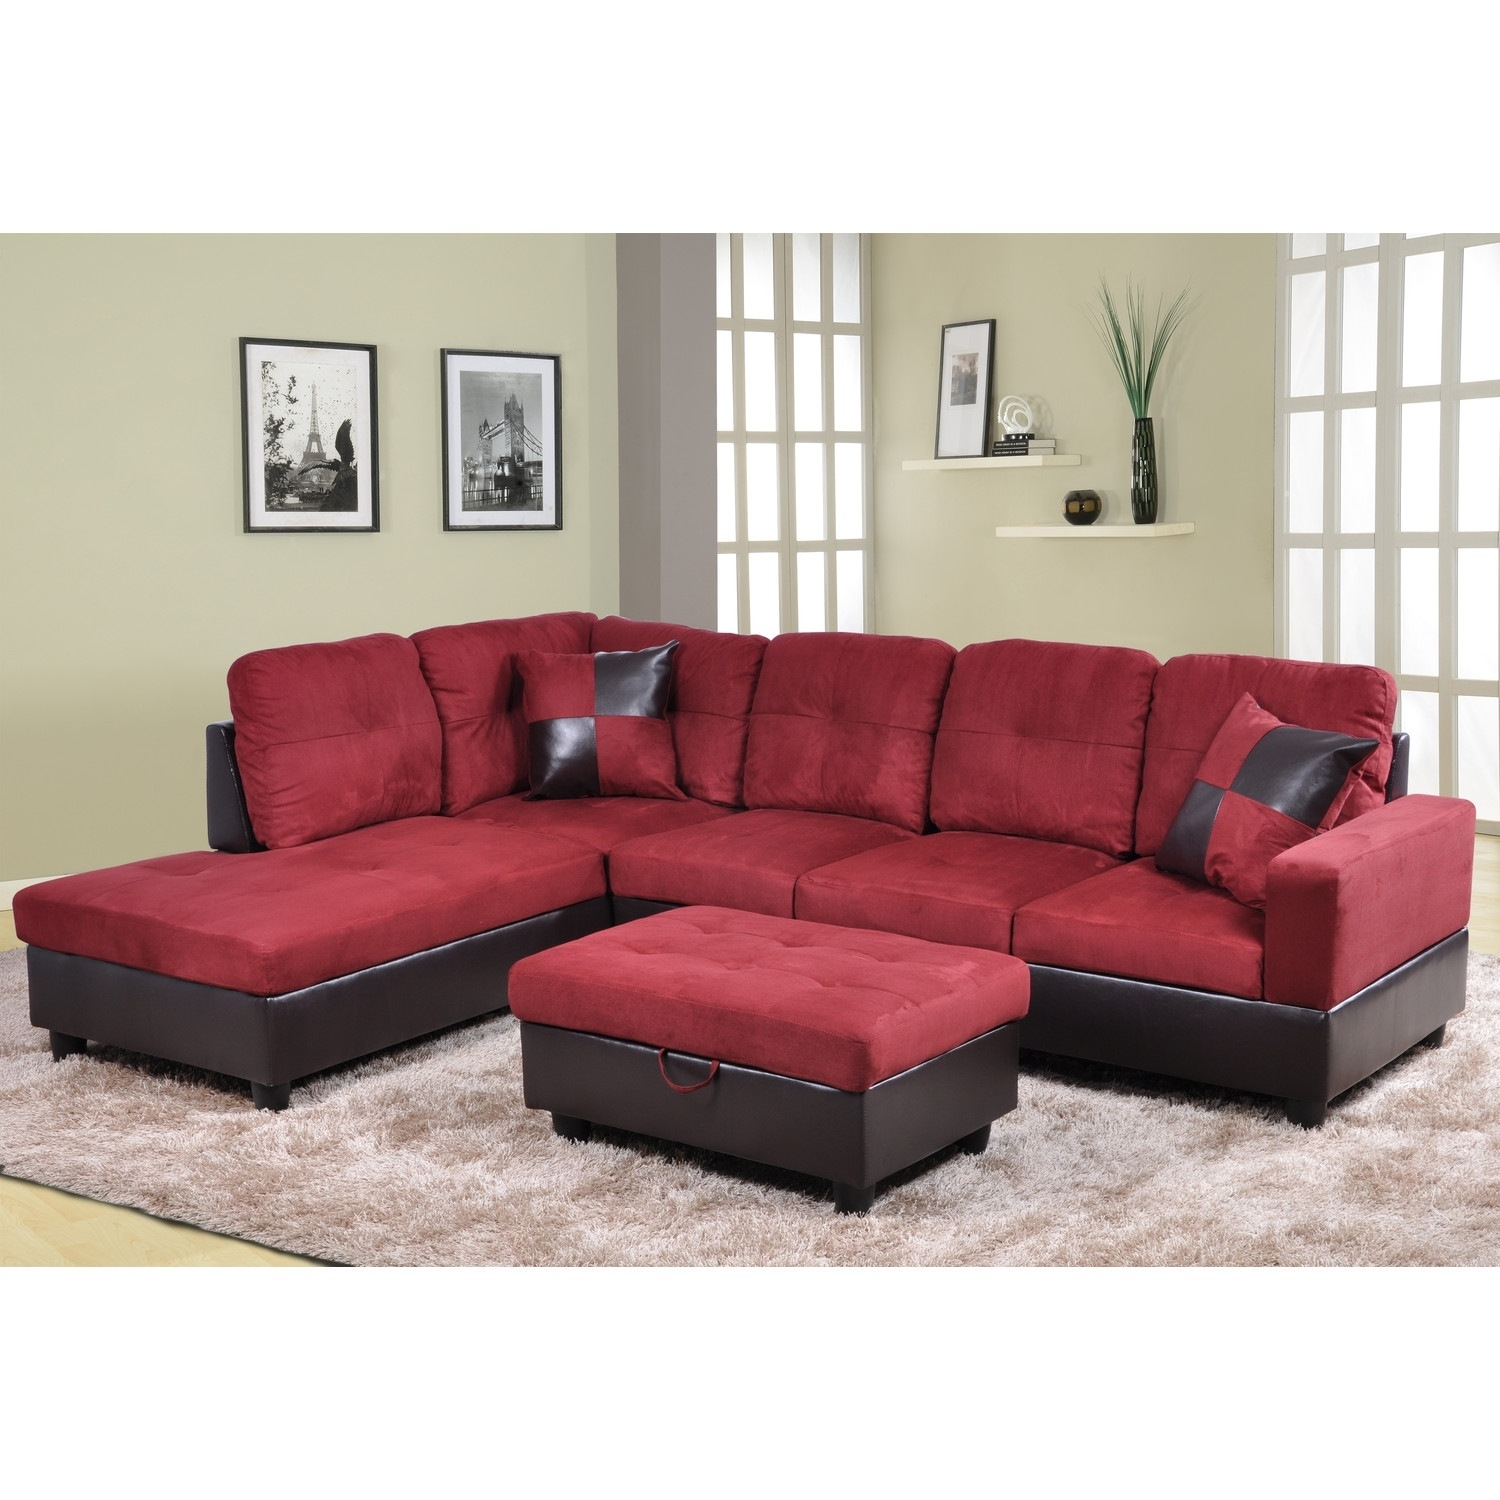 Cheap Sectional Sofas For Sale Inspirational Furniture Sears Sofa Pertaining To Sectional Sofas At Sears (View 10 of 10)